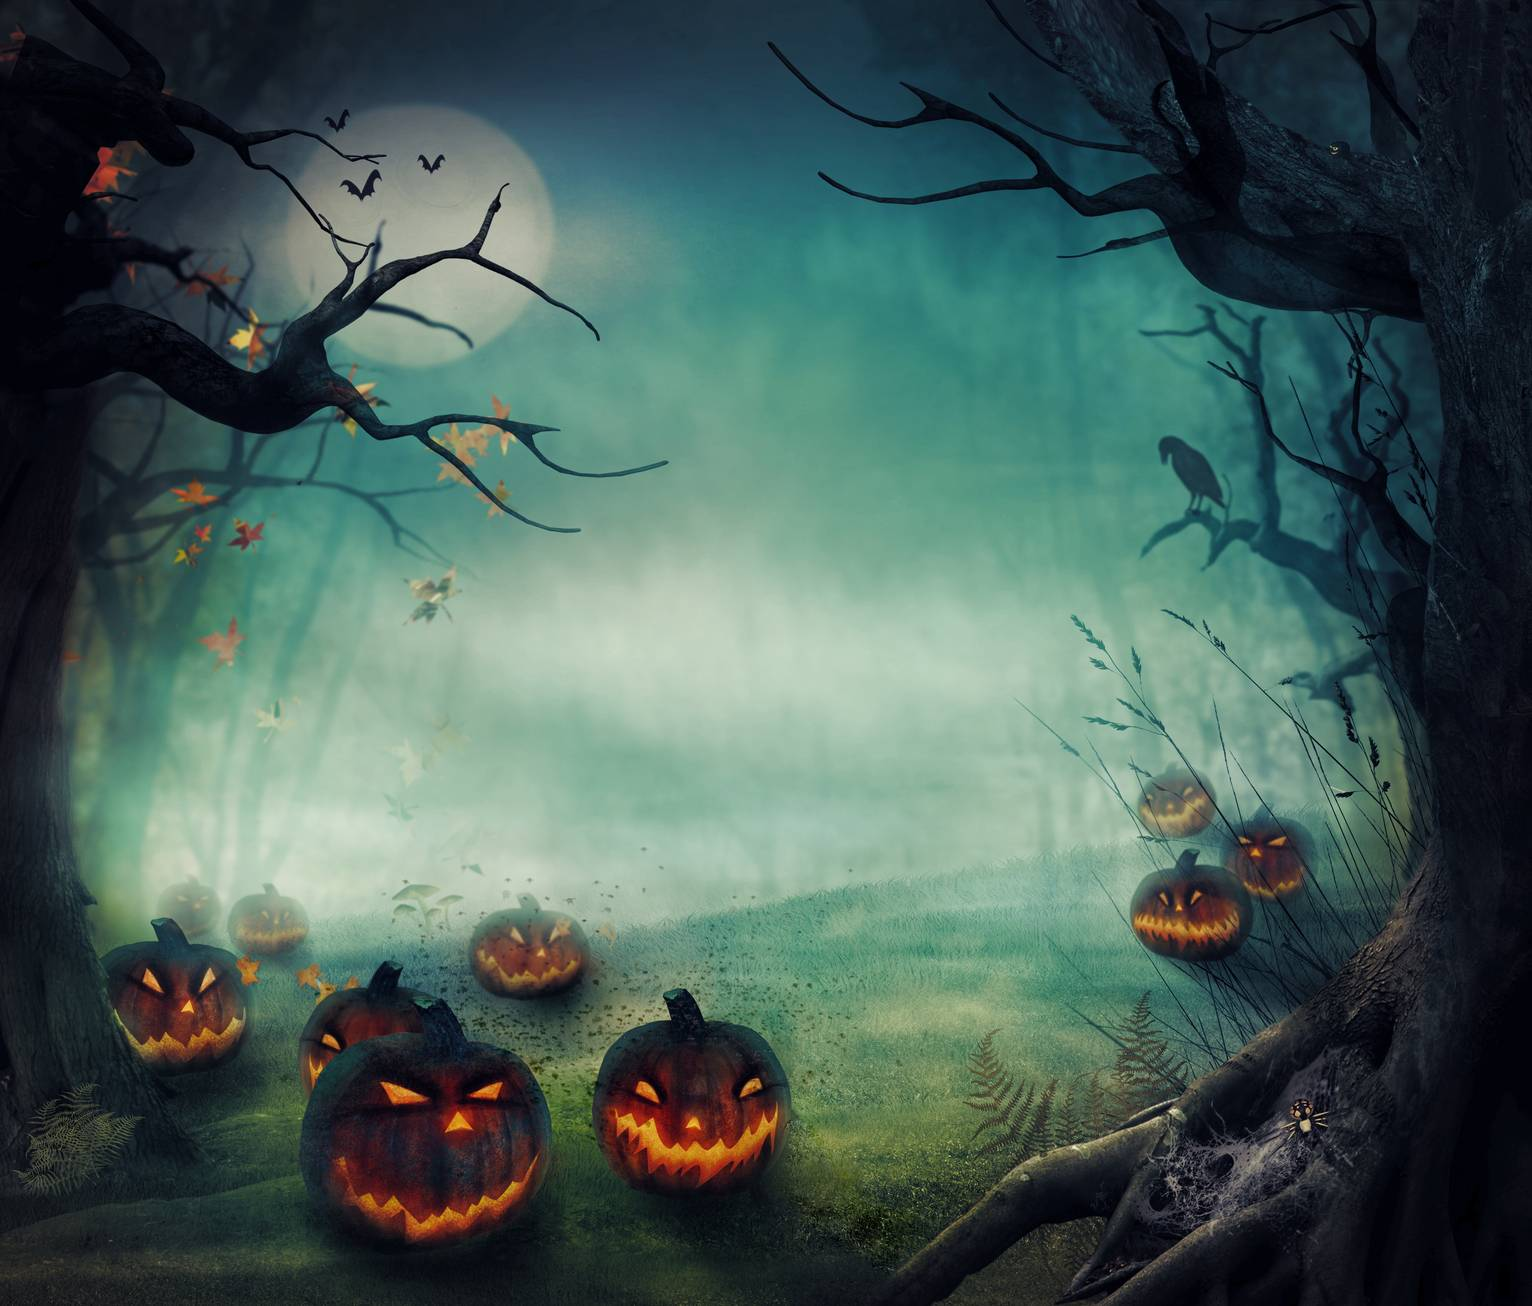 Scary Halloween Wallpapers - Wallpaper Cave